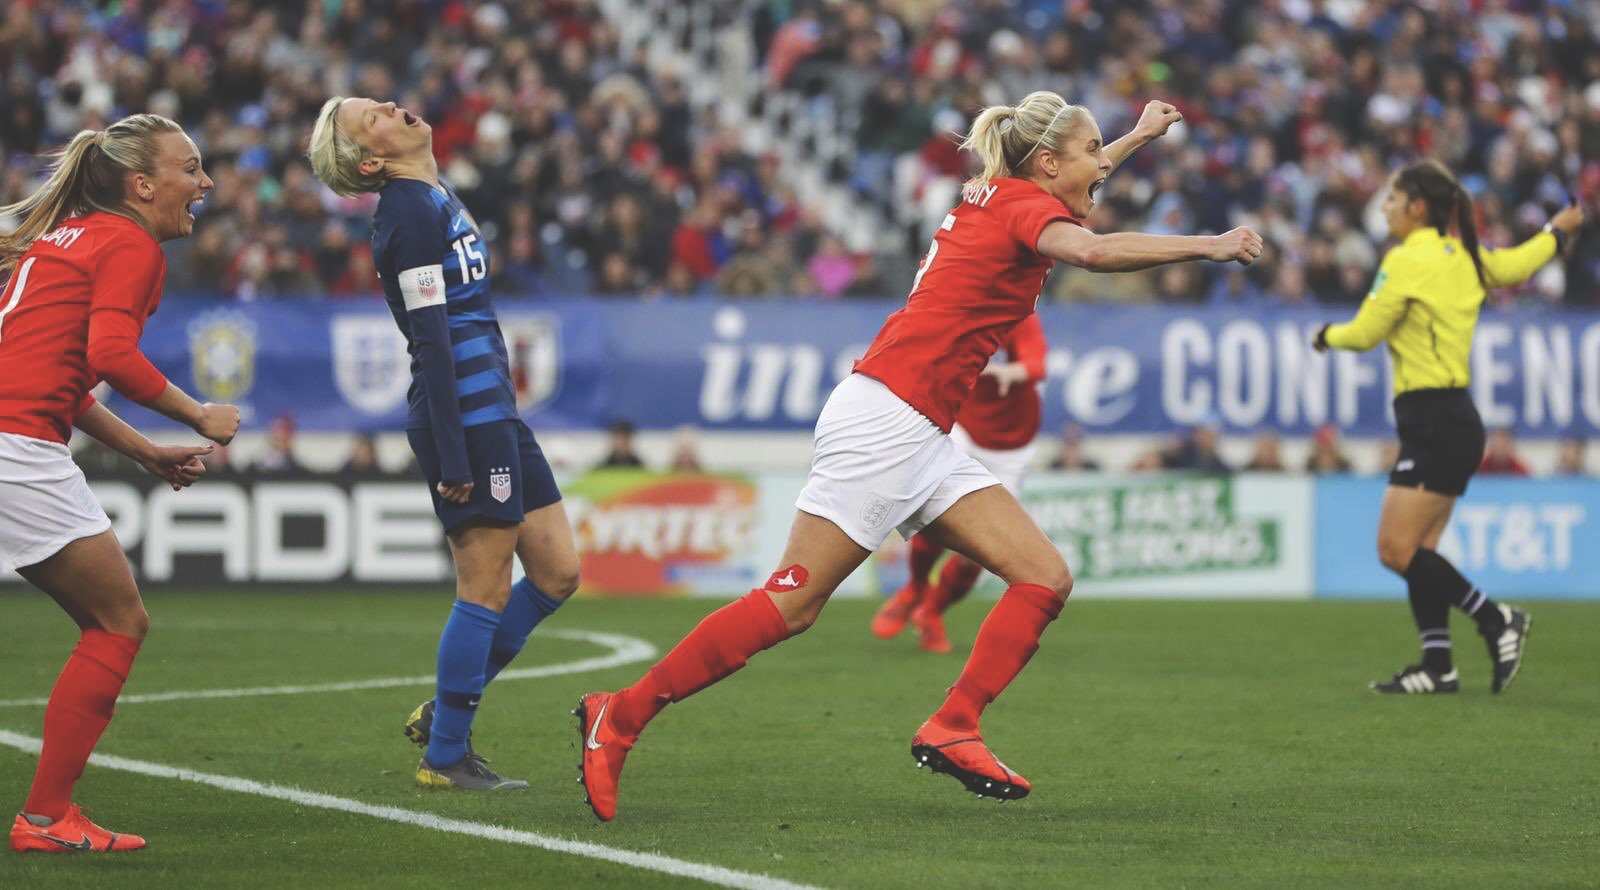 Steph Houghton celebrates scoring against the USA in the She Believes Cup. Photo from @StephHoughton2